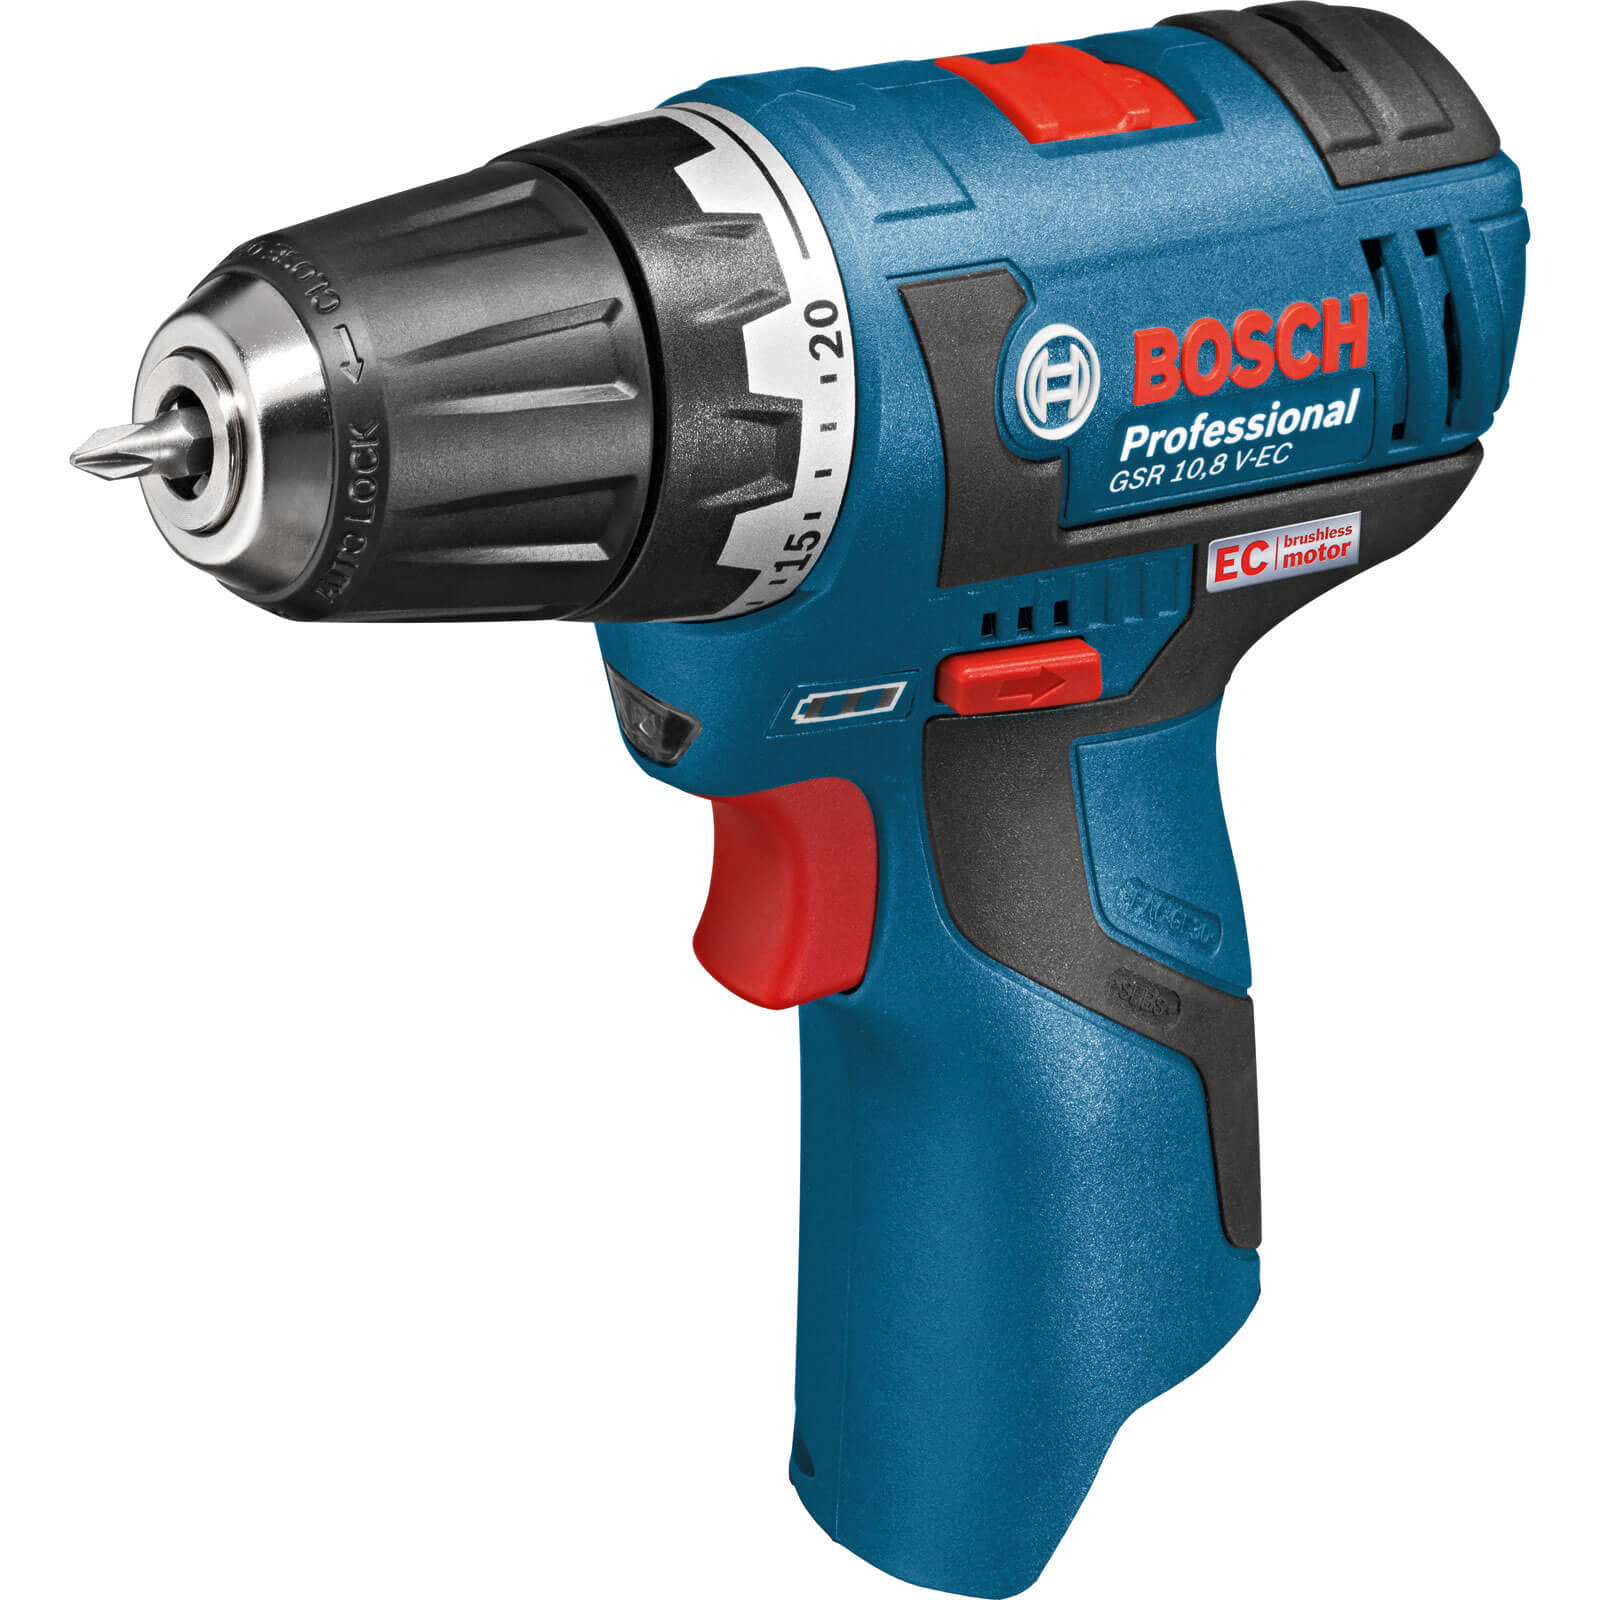 Bosch GSR 10.8 V-EC 10.8v Cordless 2 Speed Brushless Drill Driver without Battery or Charger